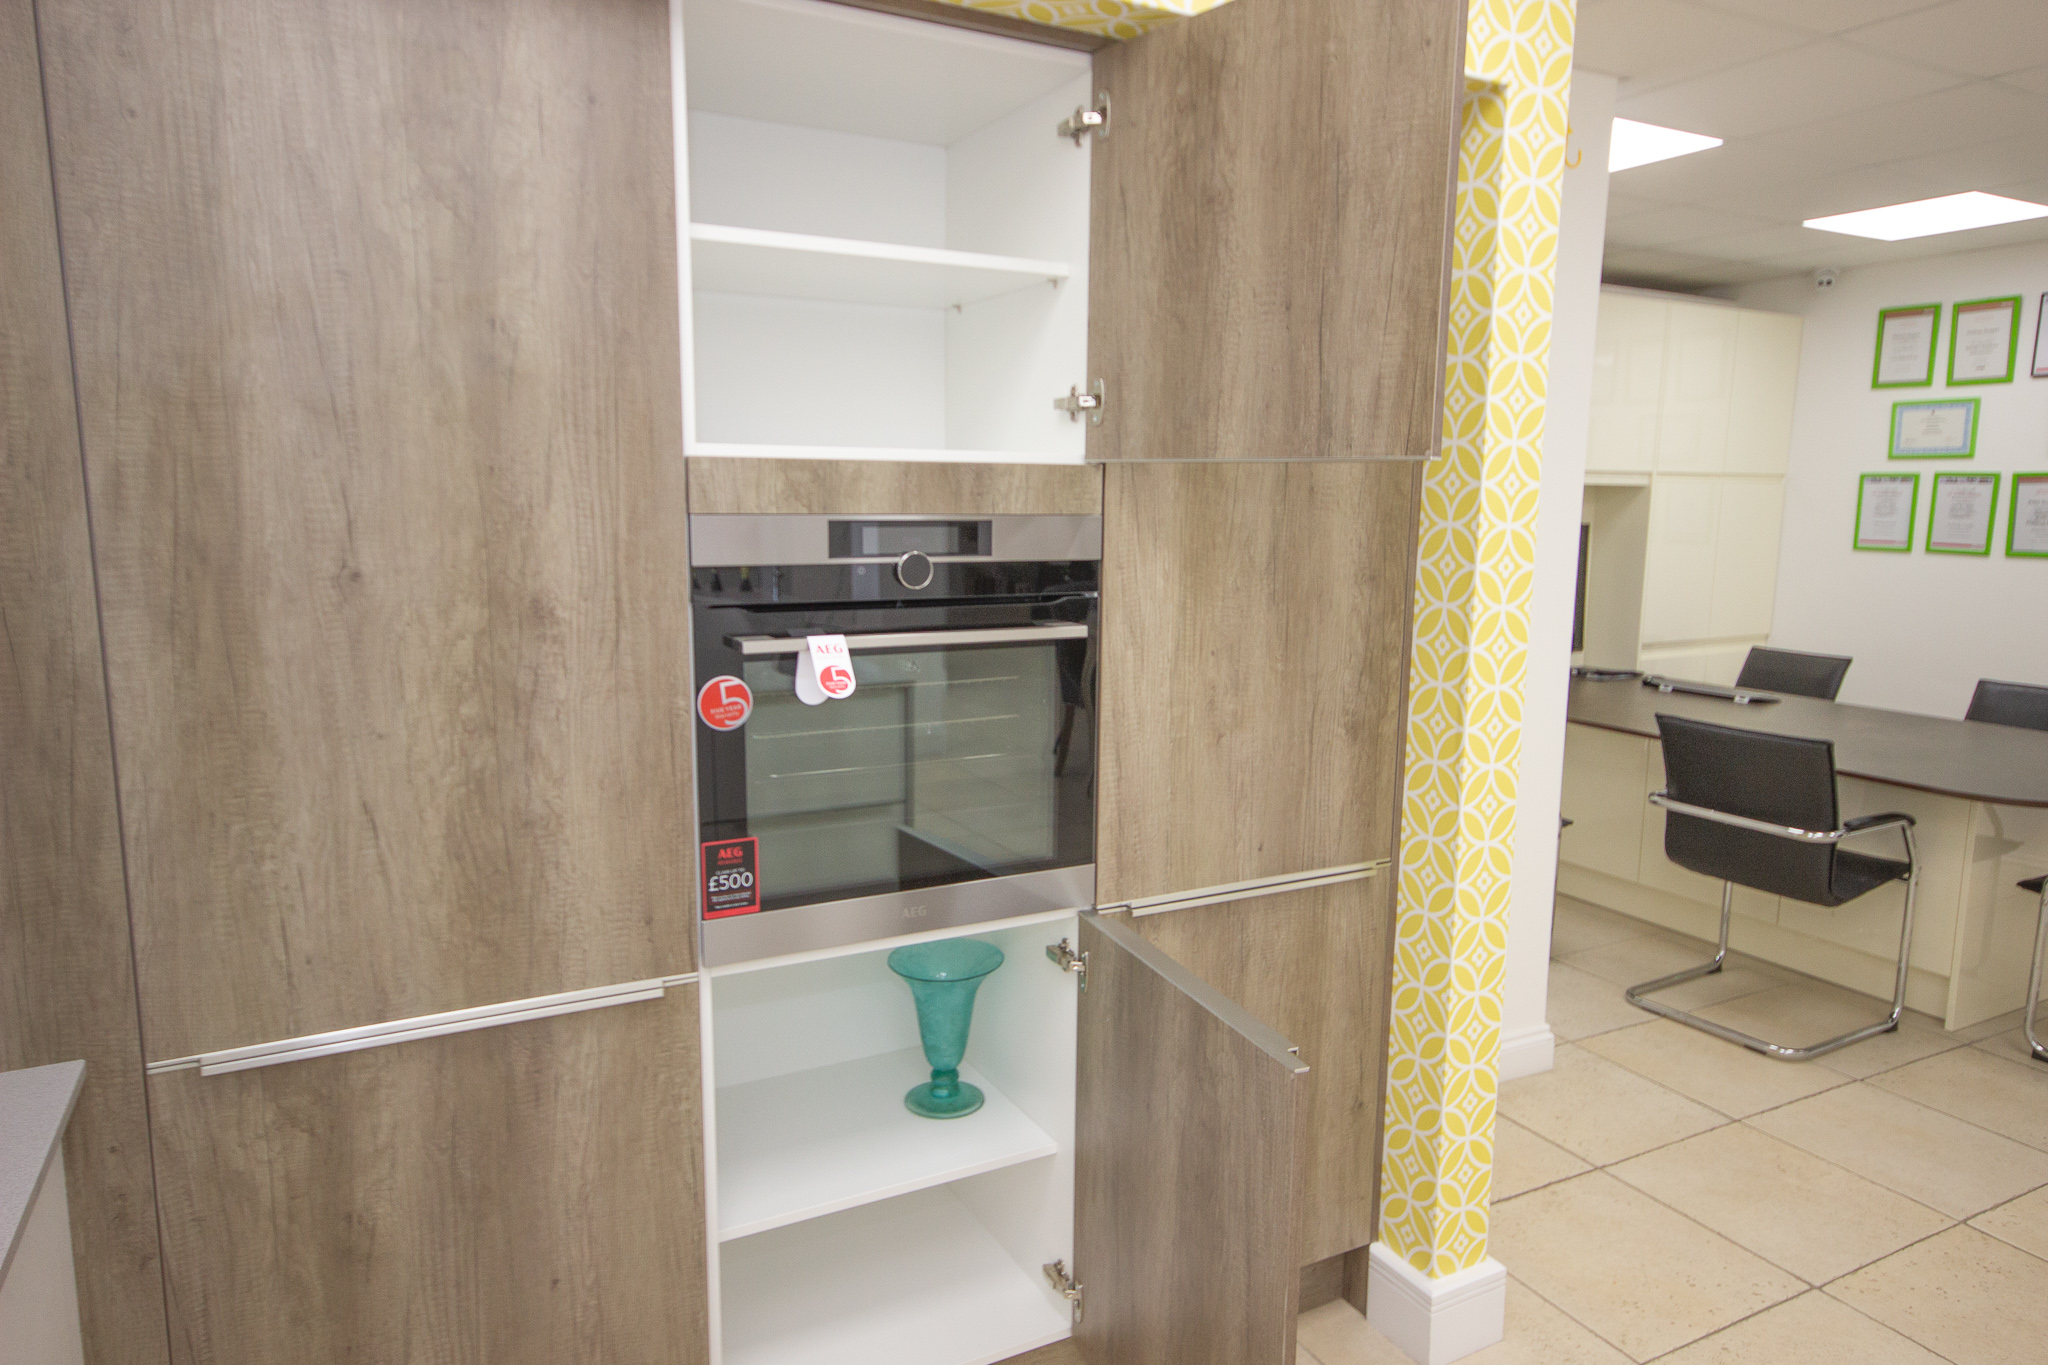 Used Kitchen Cabinets For Sale Orlando Fl Rrp 12 250 Gallery Inline Gloss And Orlando Dark Oak Ex